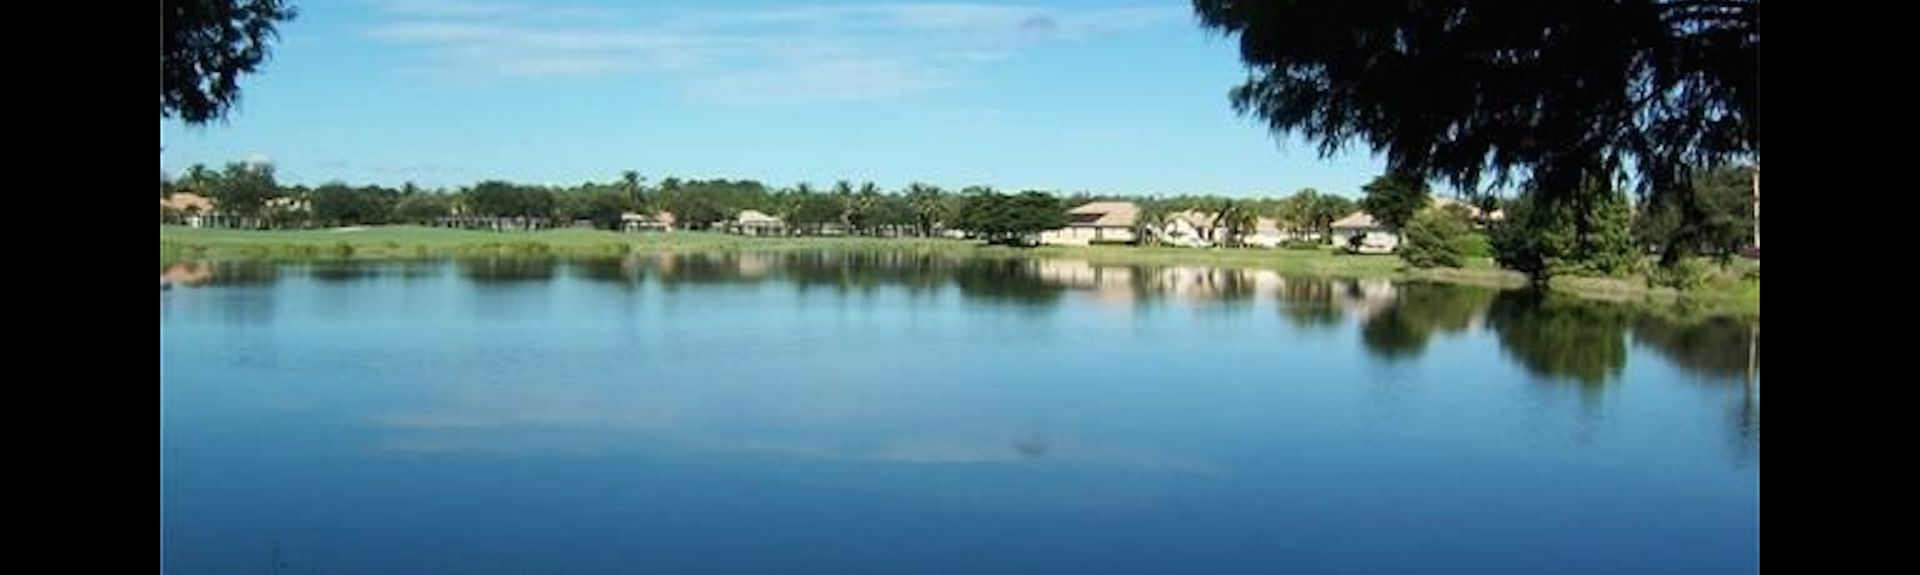 Legends Golf & Country Club (Fort Myers, Florida, USA)